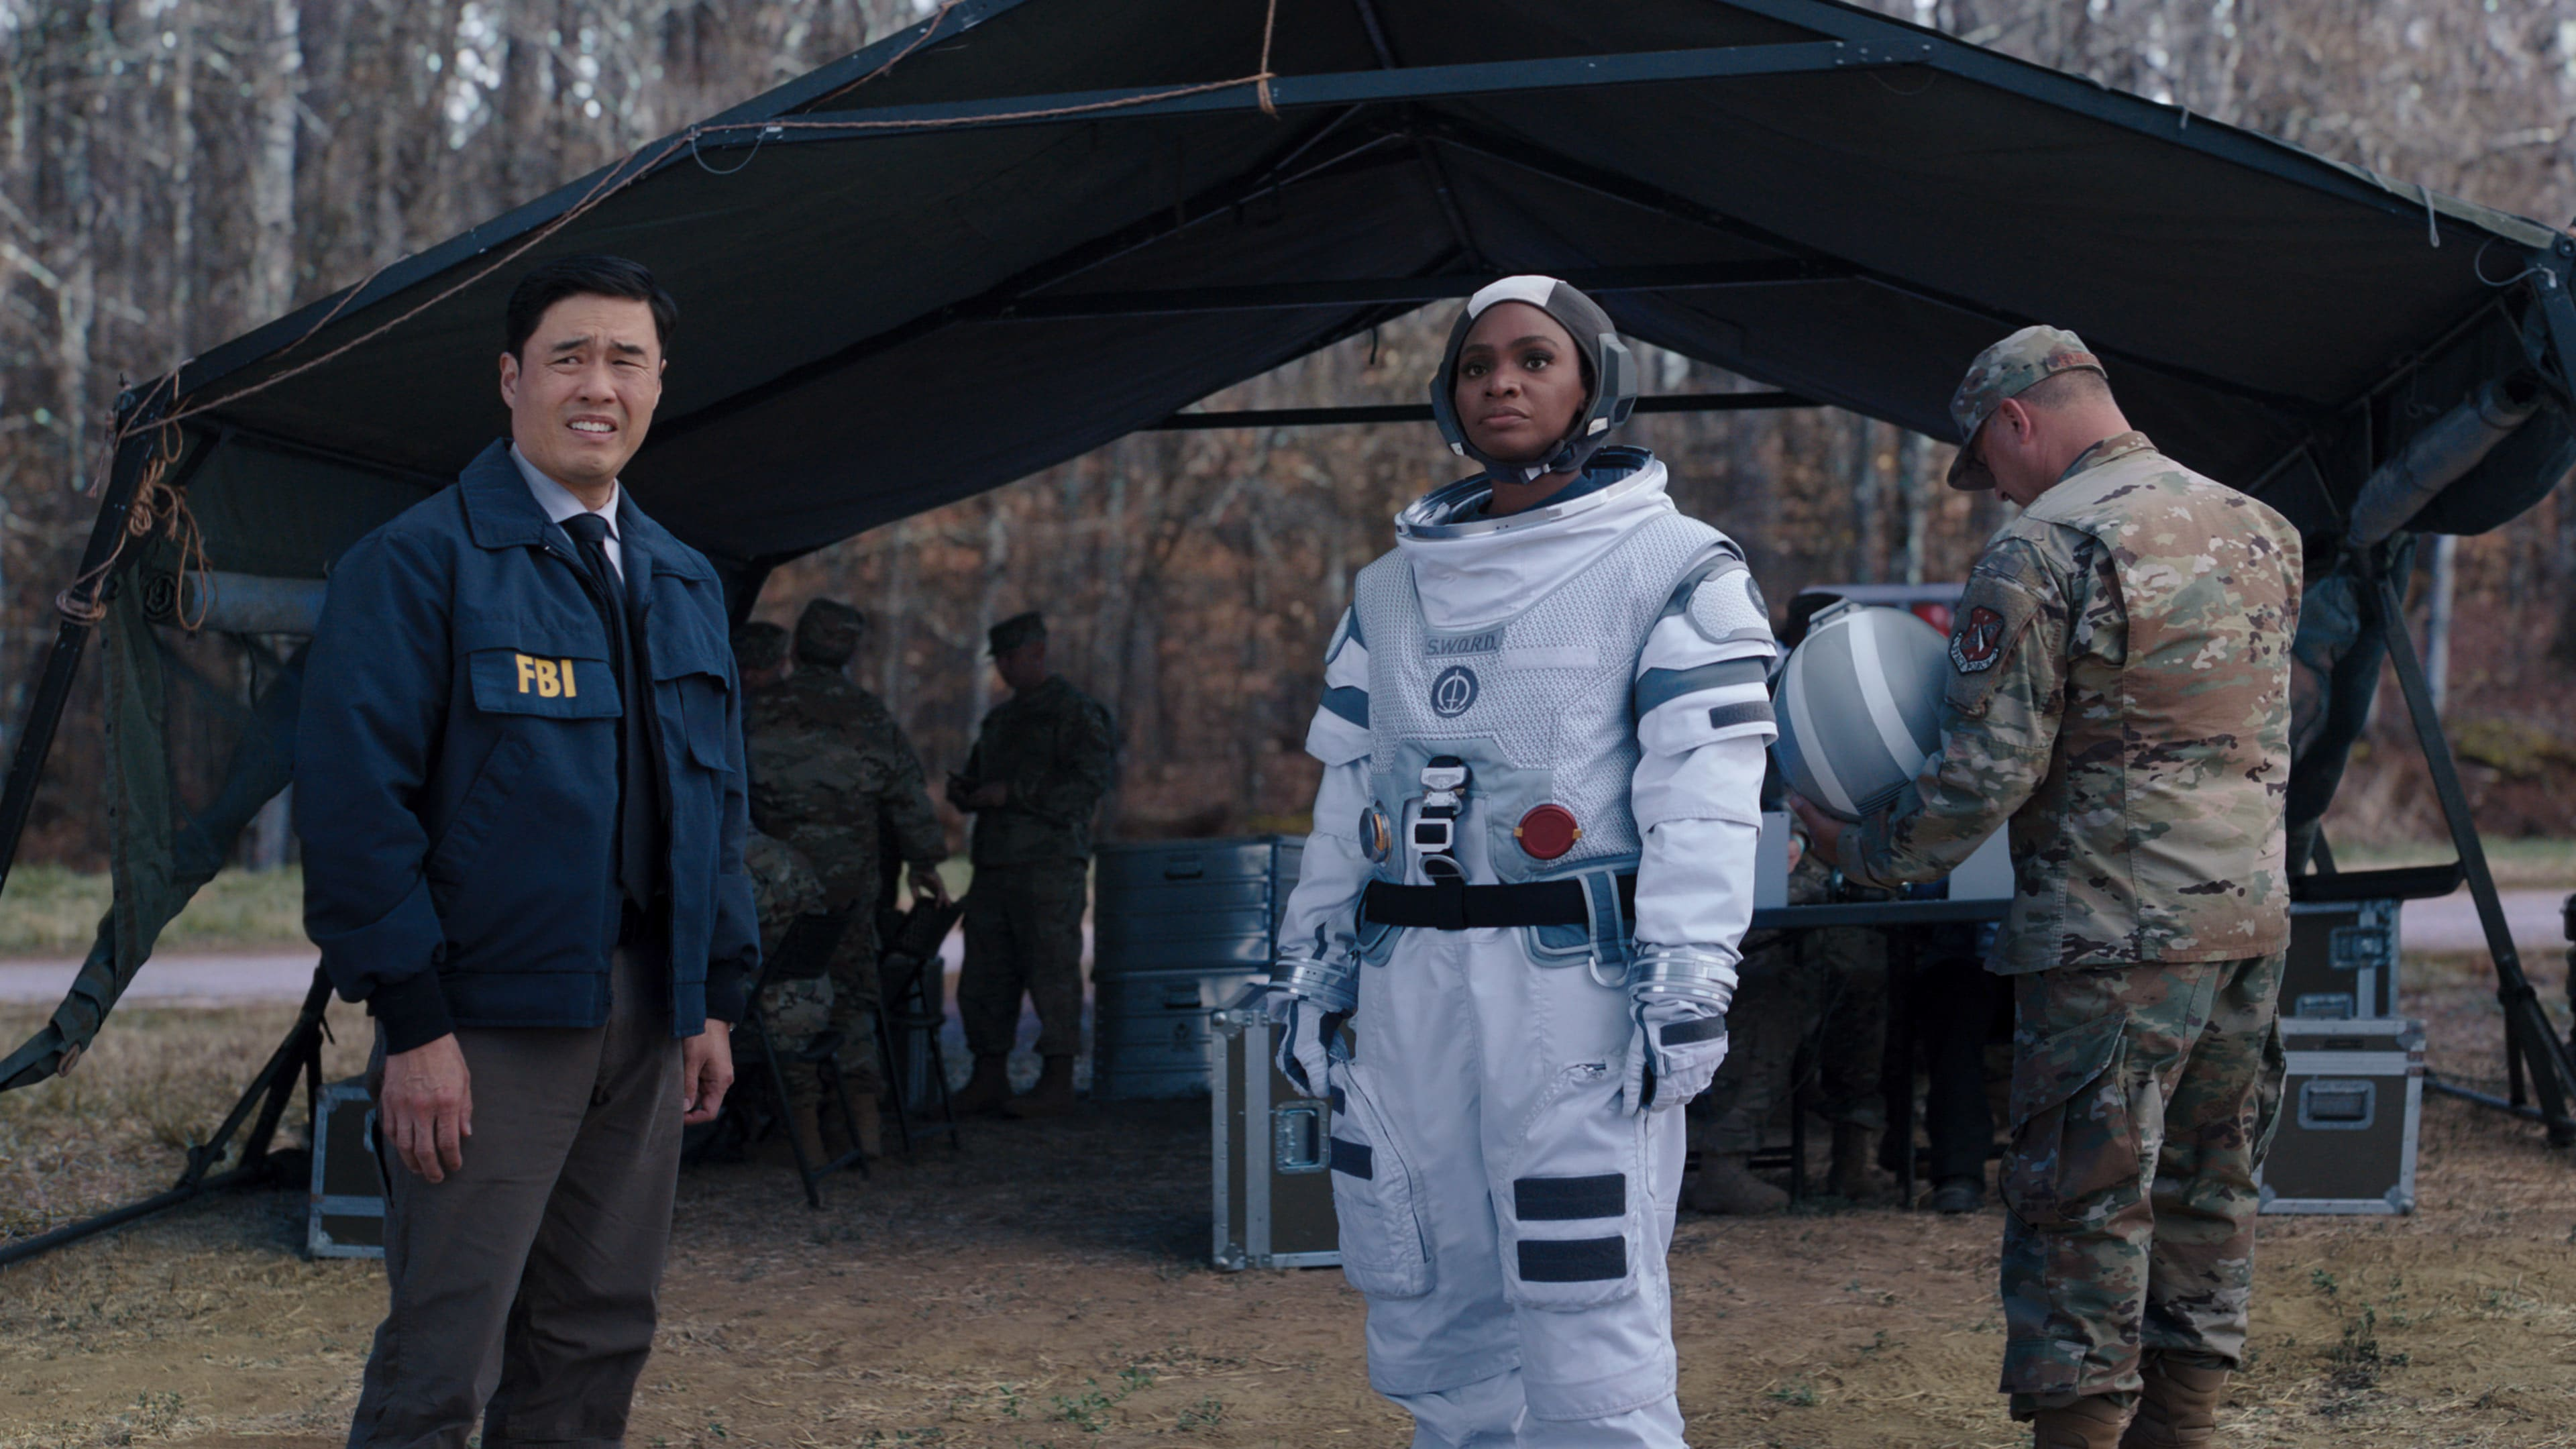 (L-R): Randall Park as Jimmy Woo and Teyonah Parris as Monica Rambeau in Marvel Studios' WANDAVISION exclusively on Disney+. Photo courtesy of Marvel Studios. ©Marvel Studios 2021. All Rights Reserved.